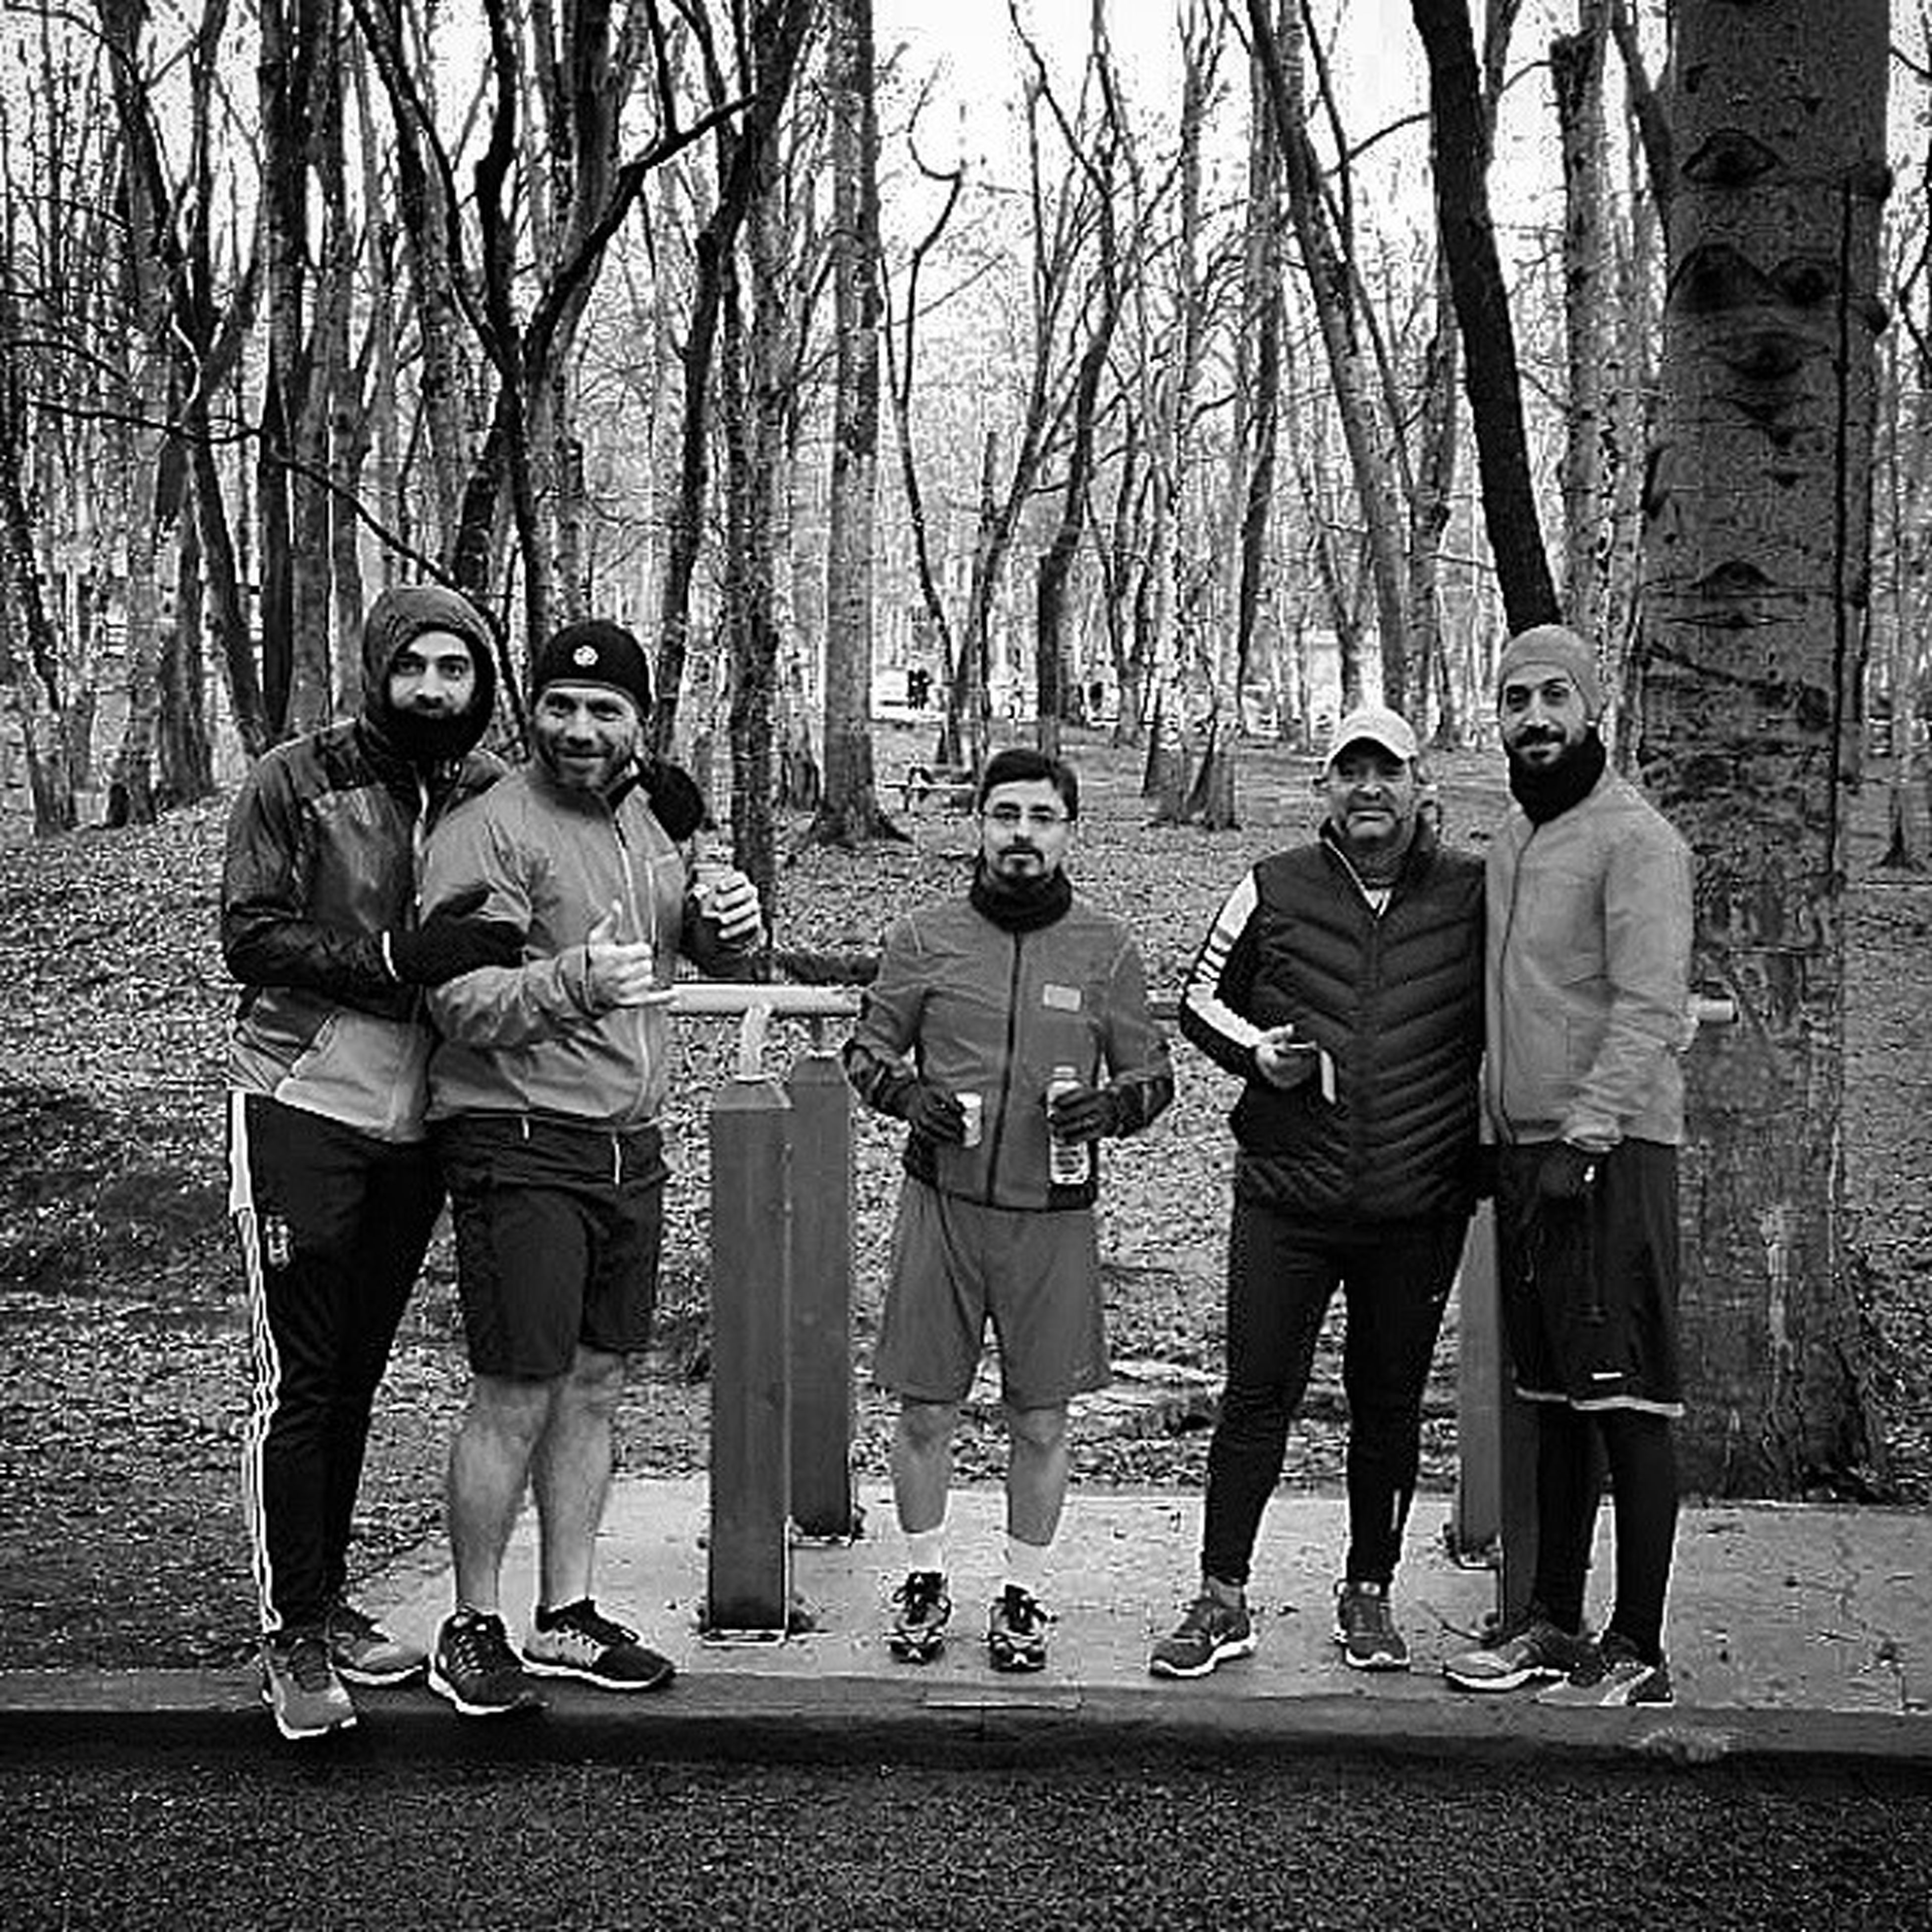 casual clothing, togetherness, lifestyles, full length, tree, childhood, leisure activity, men, standing, boys, street, girls, love, bonding, person, walking, day, rear view